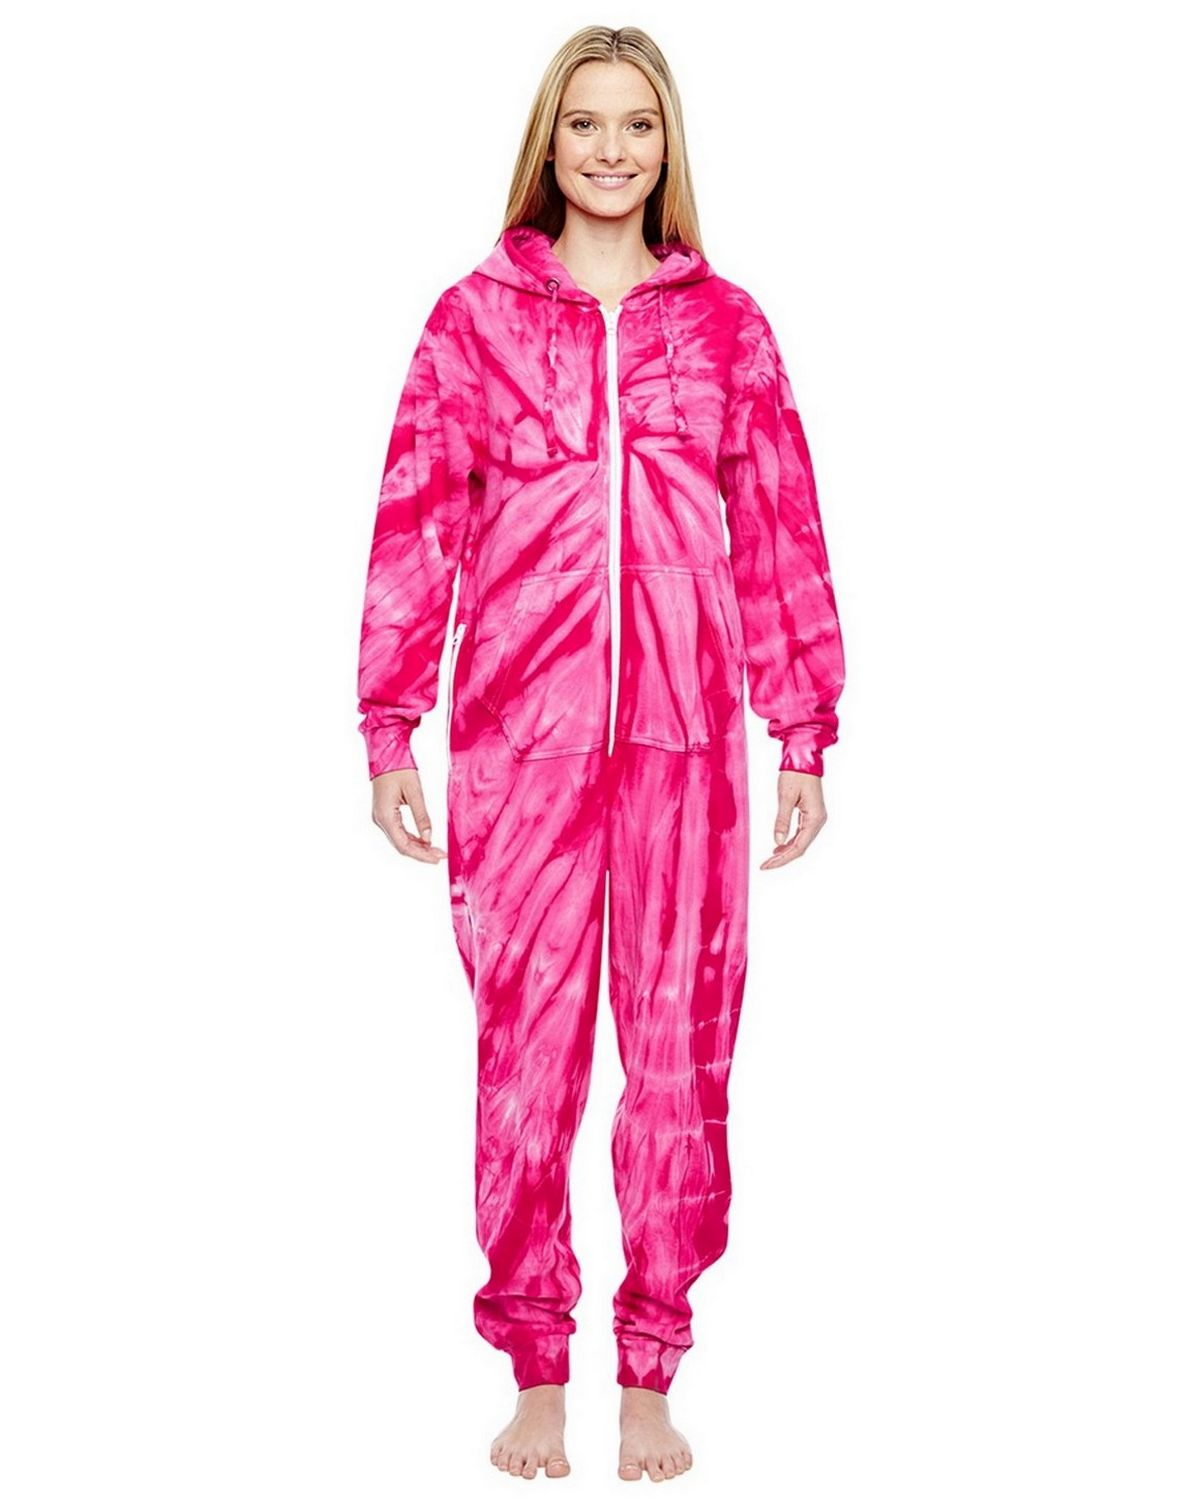 Tie-Dye CD892 All-In-One Loungewear - Spider Pink - XS CD892